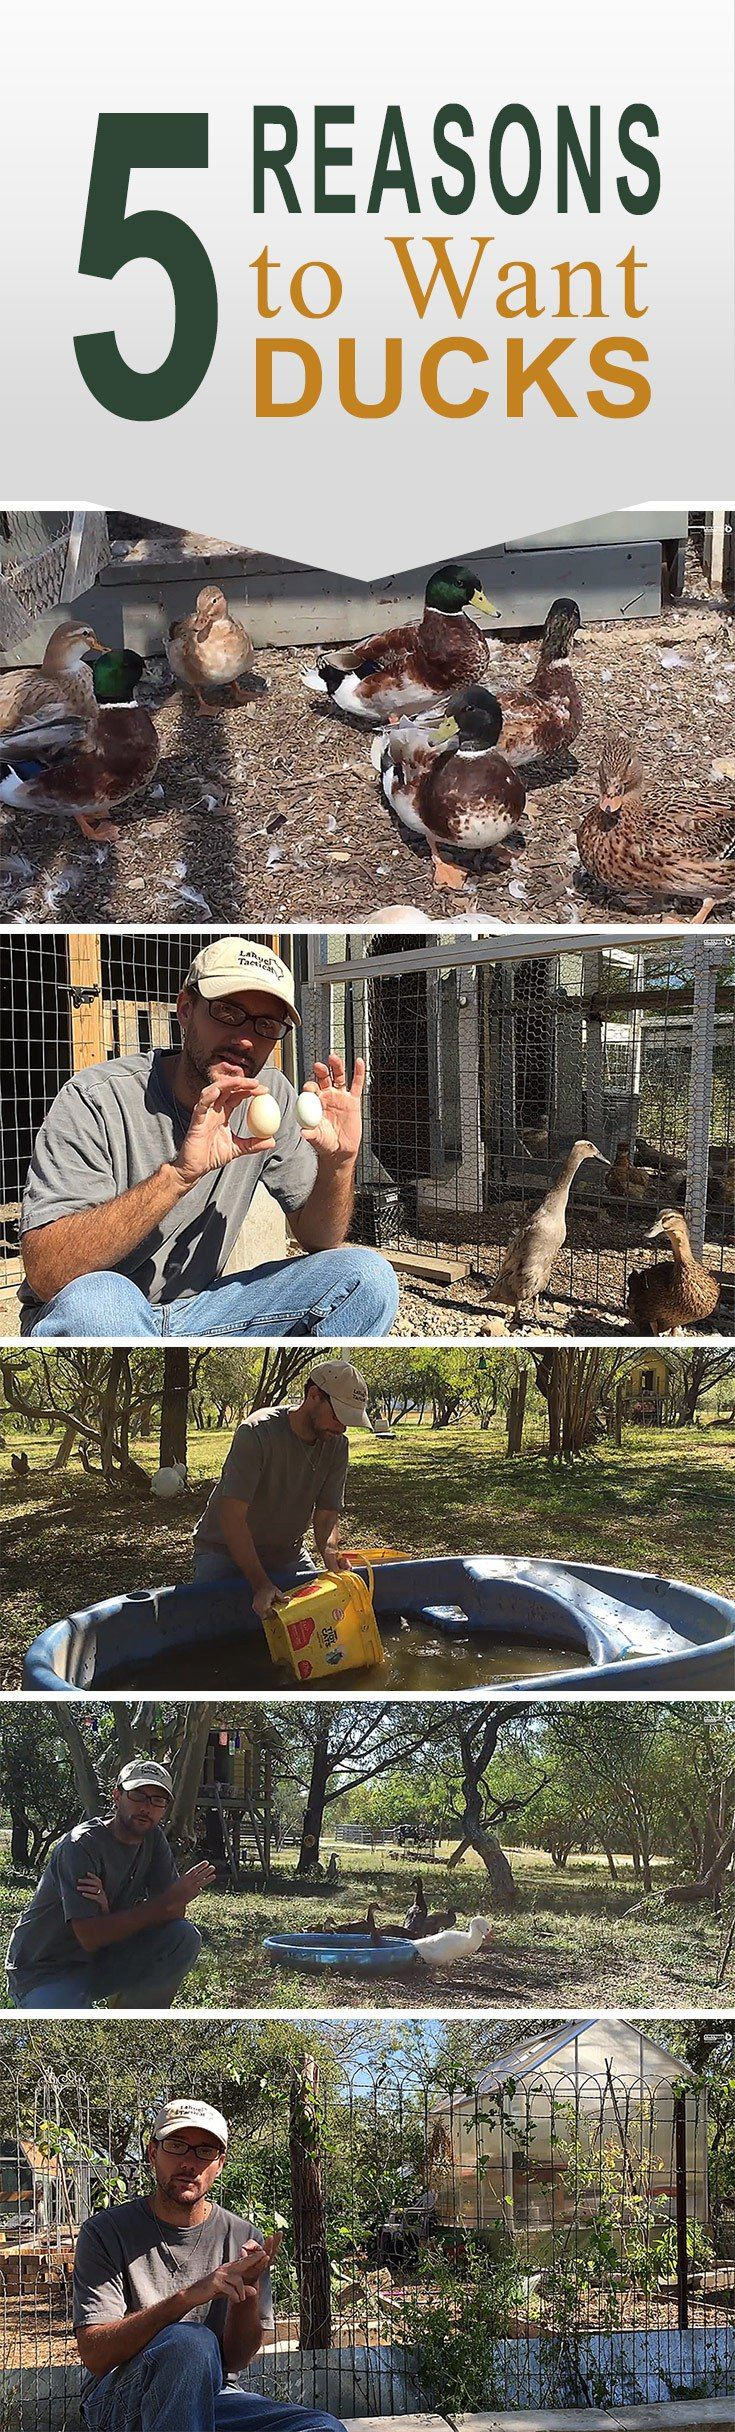 5 Reasons to Want Ducks